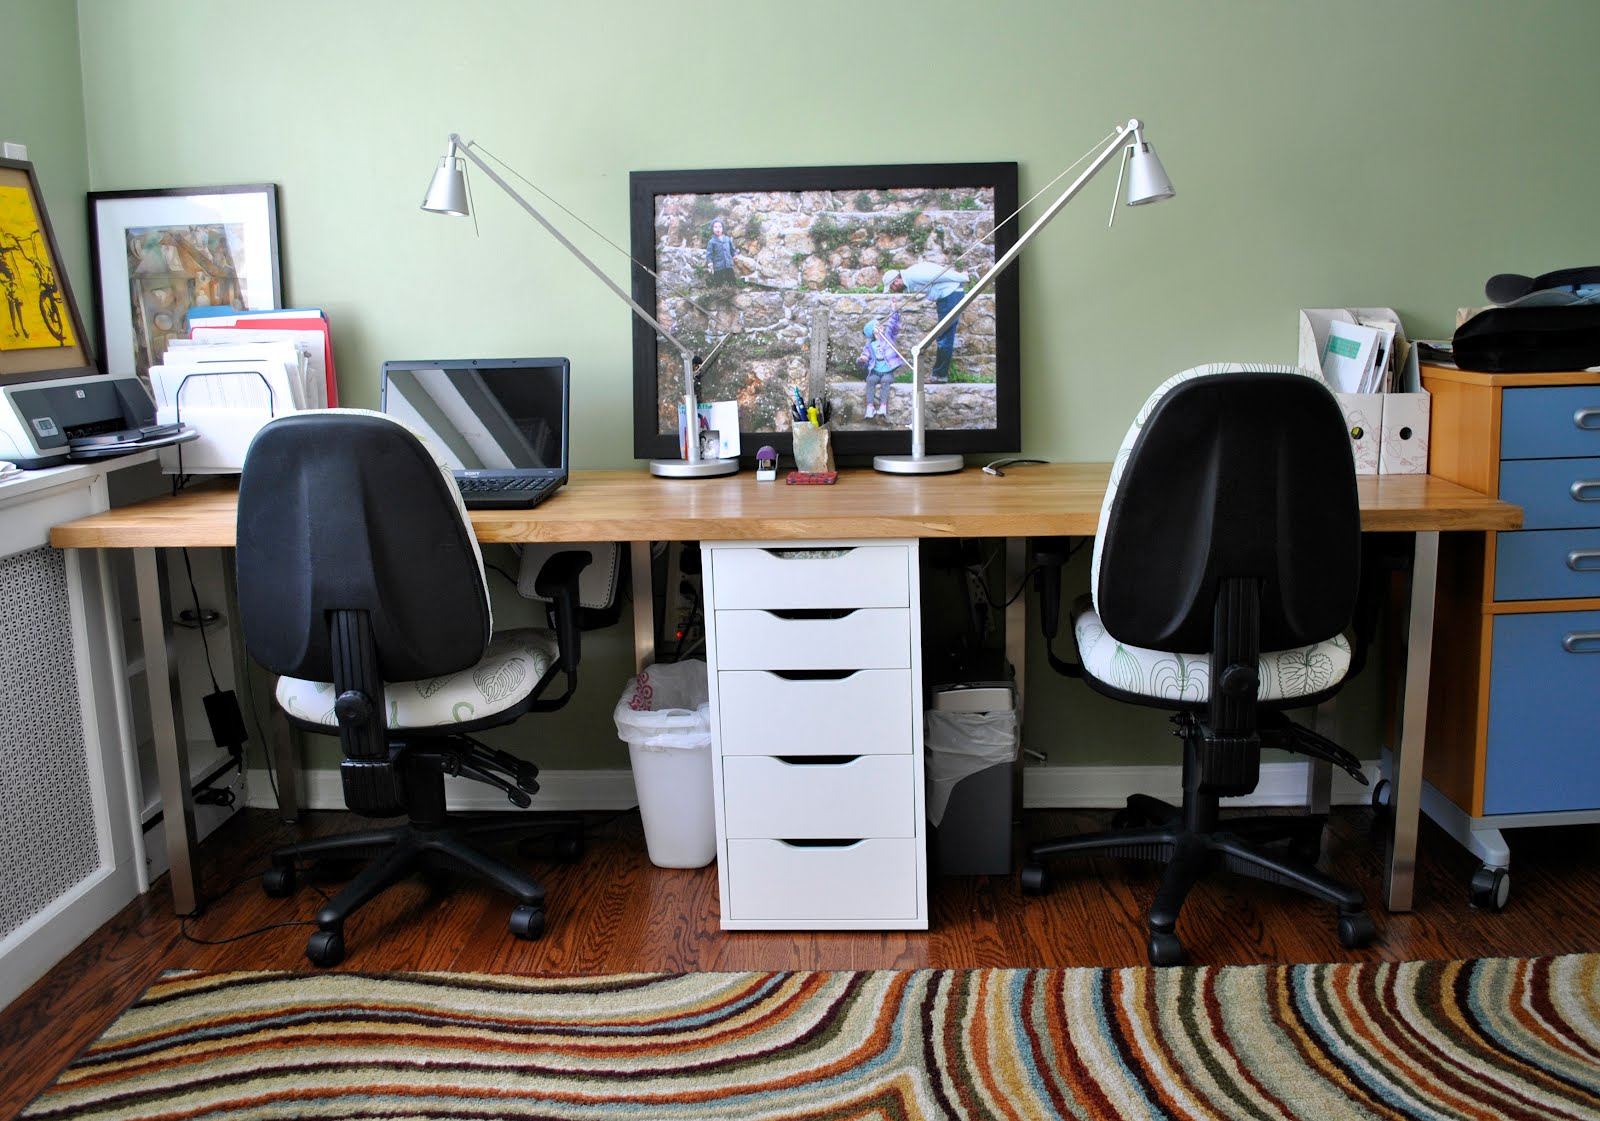 up my old craft table and six vika moliden legs the perfect desk chic ikea micke desk white